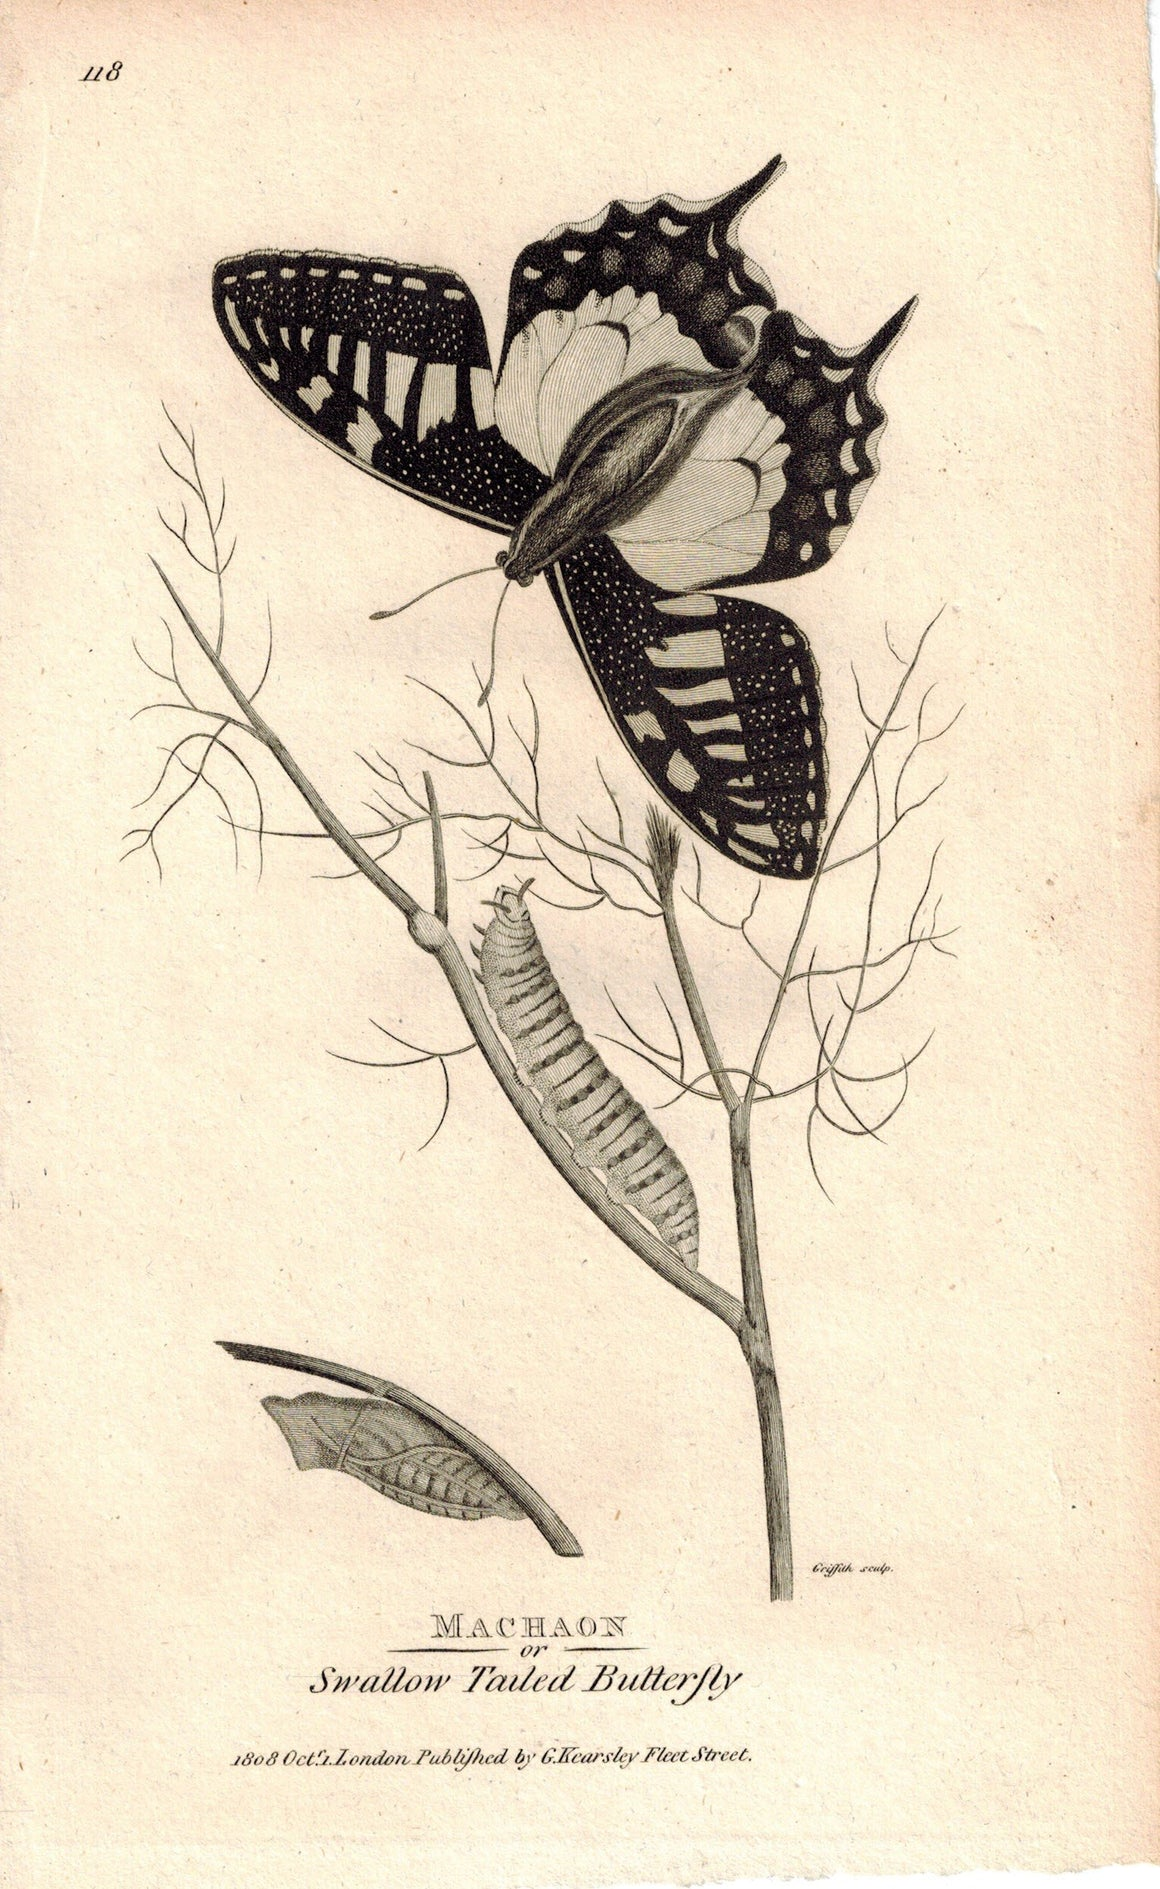 Machaon Swallow Tailed Butterfly 1809 Engraving Print by Shaw & Griffith